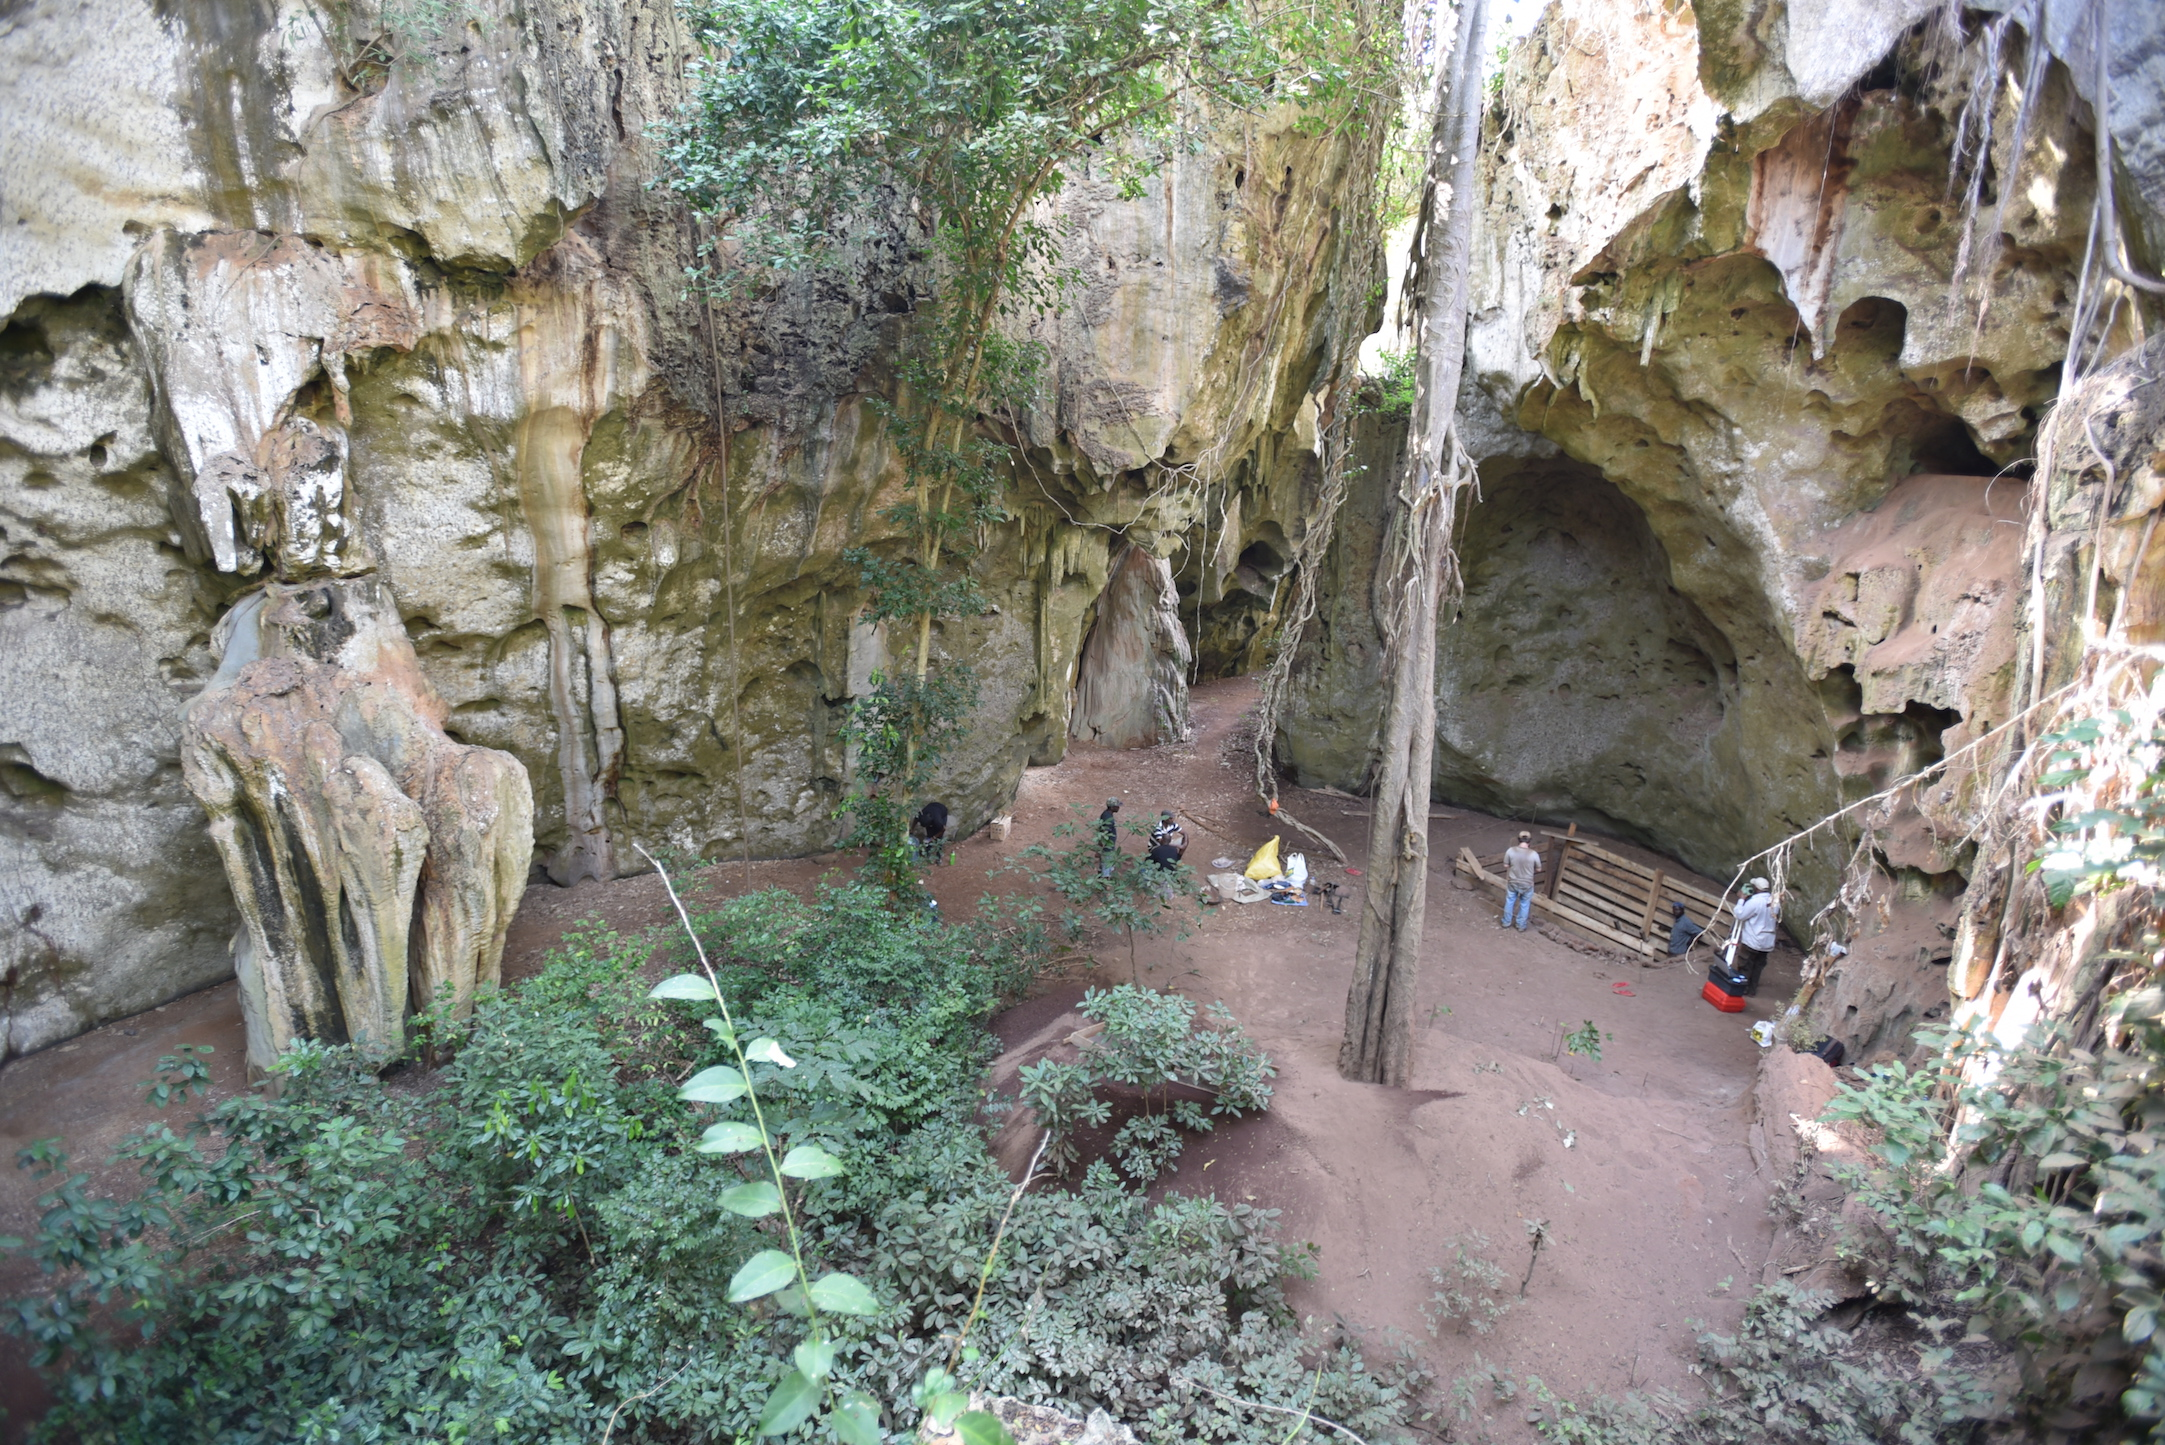 An international team of researchers has discovered a major cave site along the East African coast. Panga ya Saidi represents the first substantial cave record from the Middle Stone Age to the Iron Age in this region.